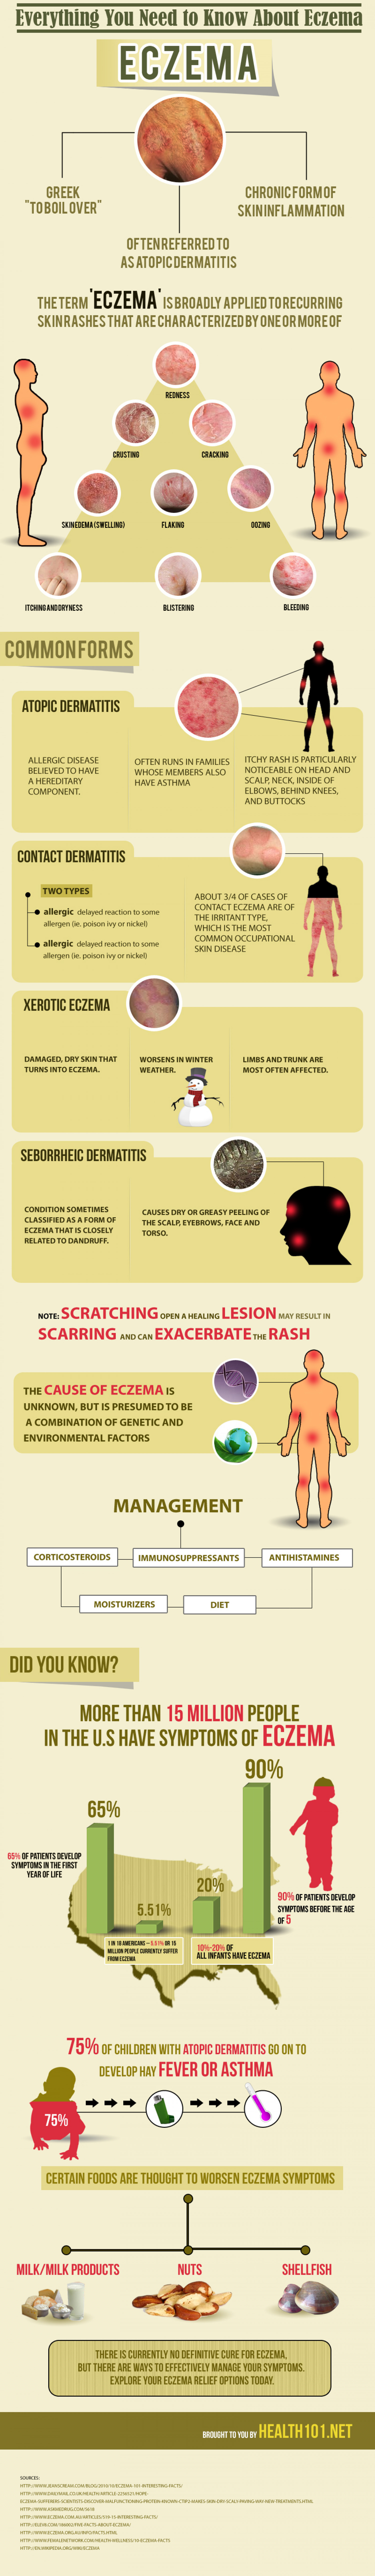 Everything You Need To Know About Eczema Infographic